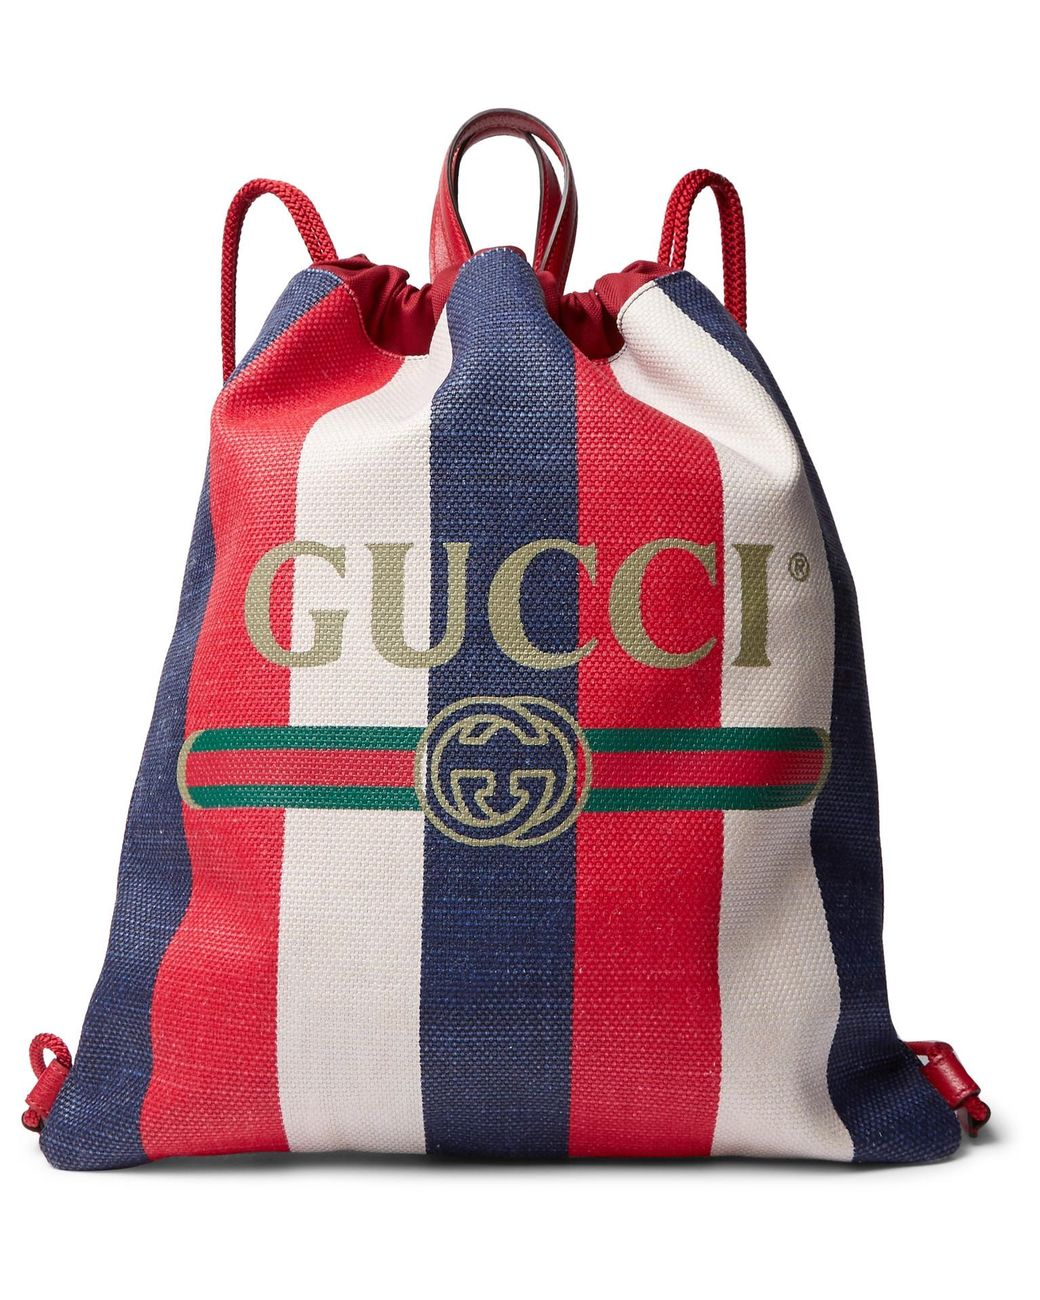 2e0c4a26f3c8 Gucci Leather-trimmed Logo-print Striped Canvas Drawstring Backpack in Red  for Men - Lyst